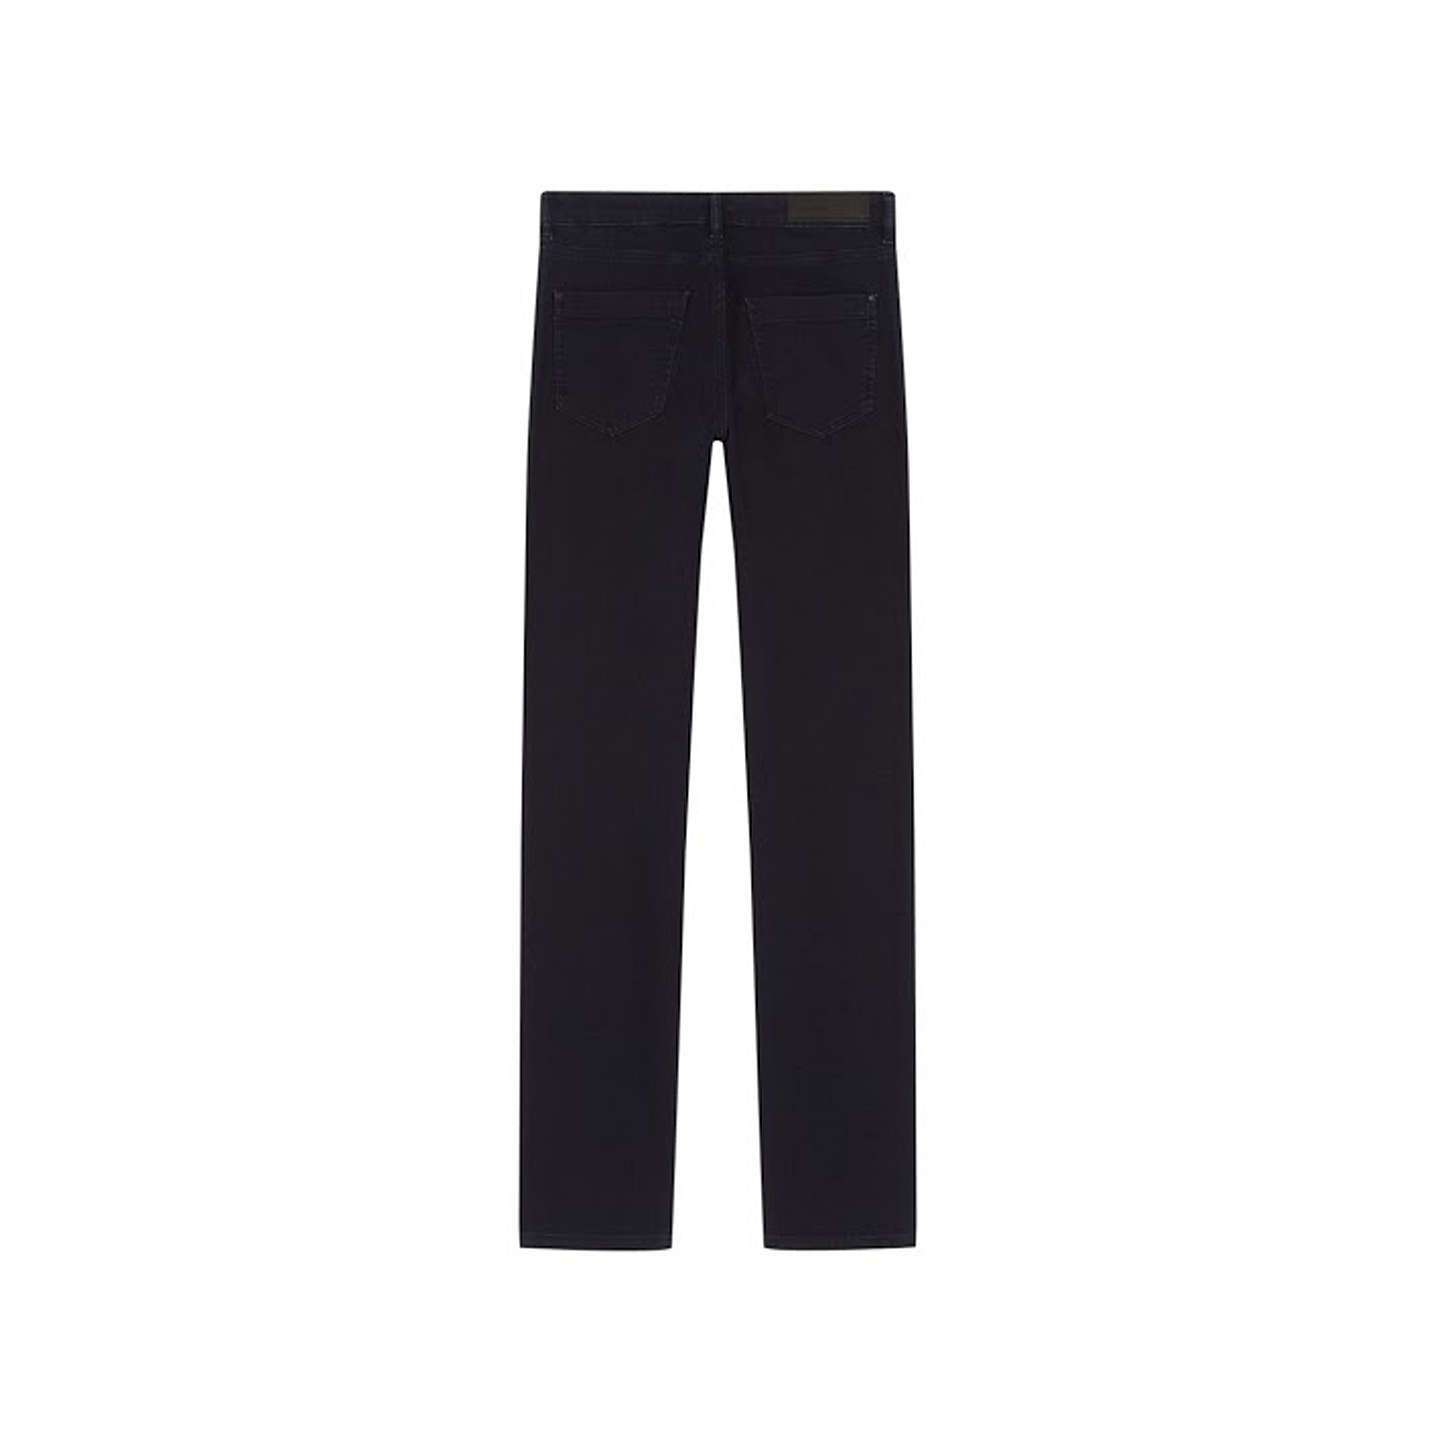 BuyGerard Darel Trousers, Deep Navy, 10 Online at johnlewis.com